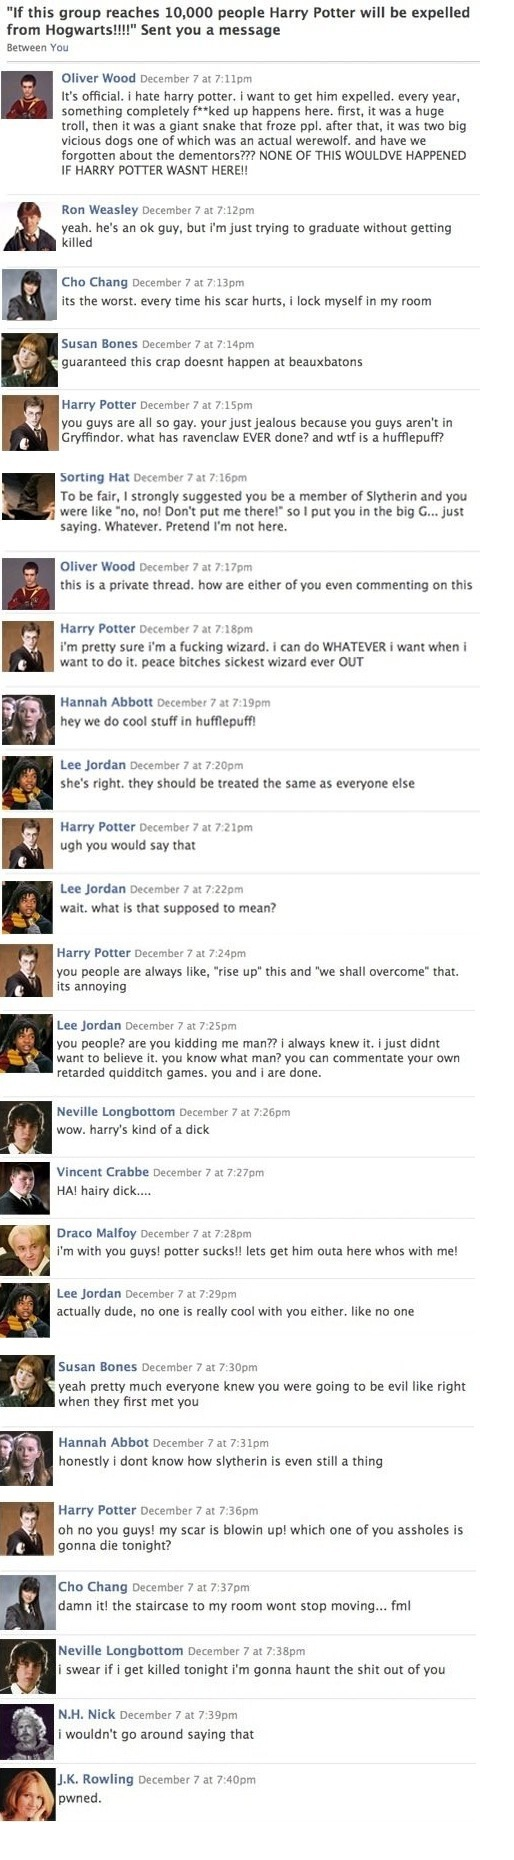 If Only There Was facebook at Hogwarts